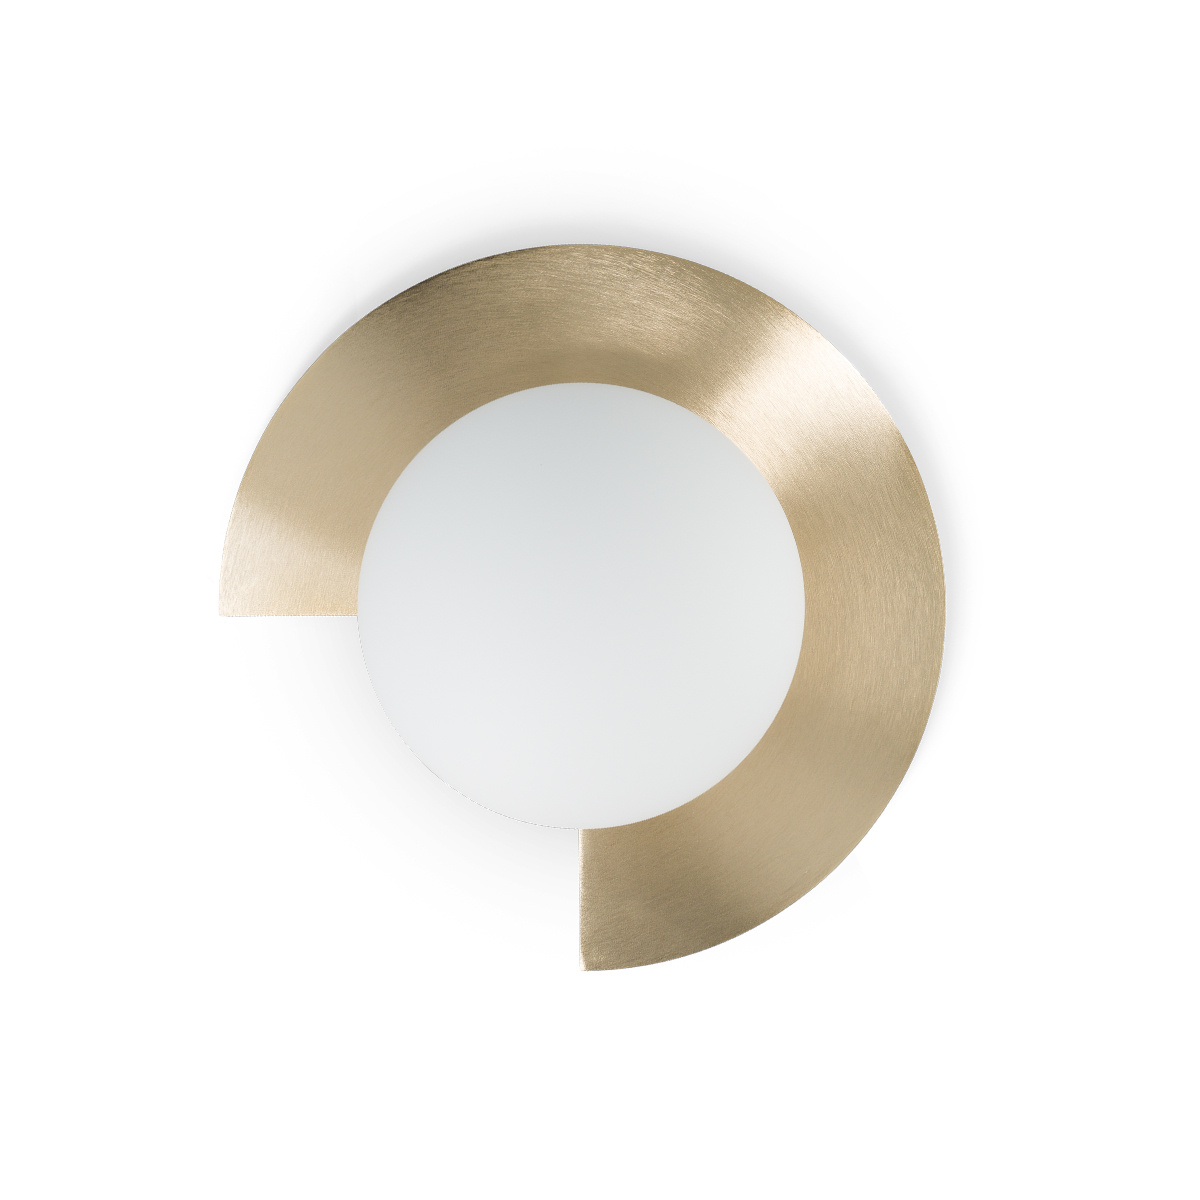 Small Mezza Luna Wall Lamp, Brushed Brass